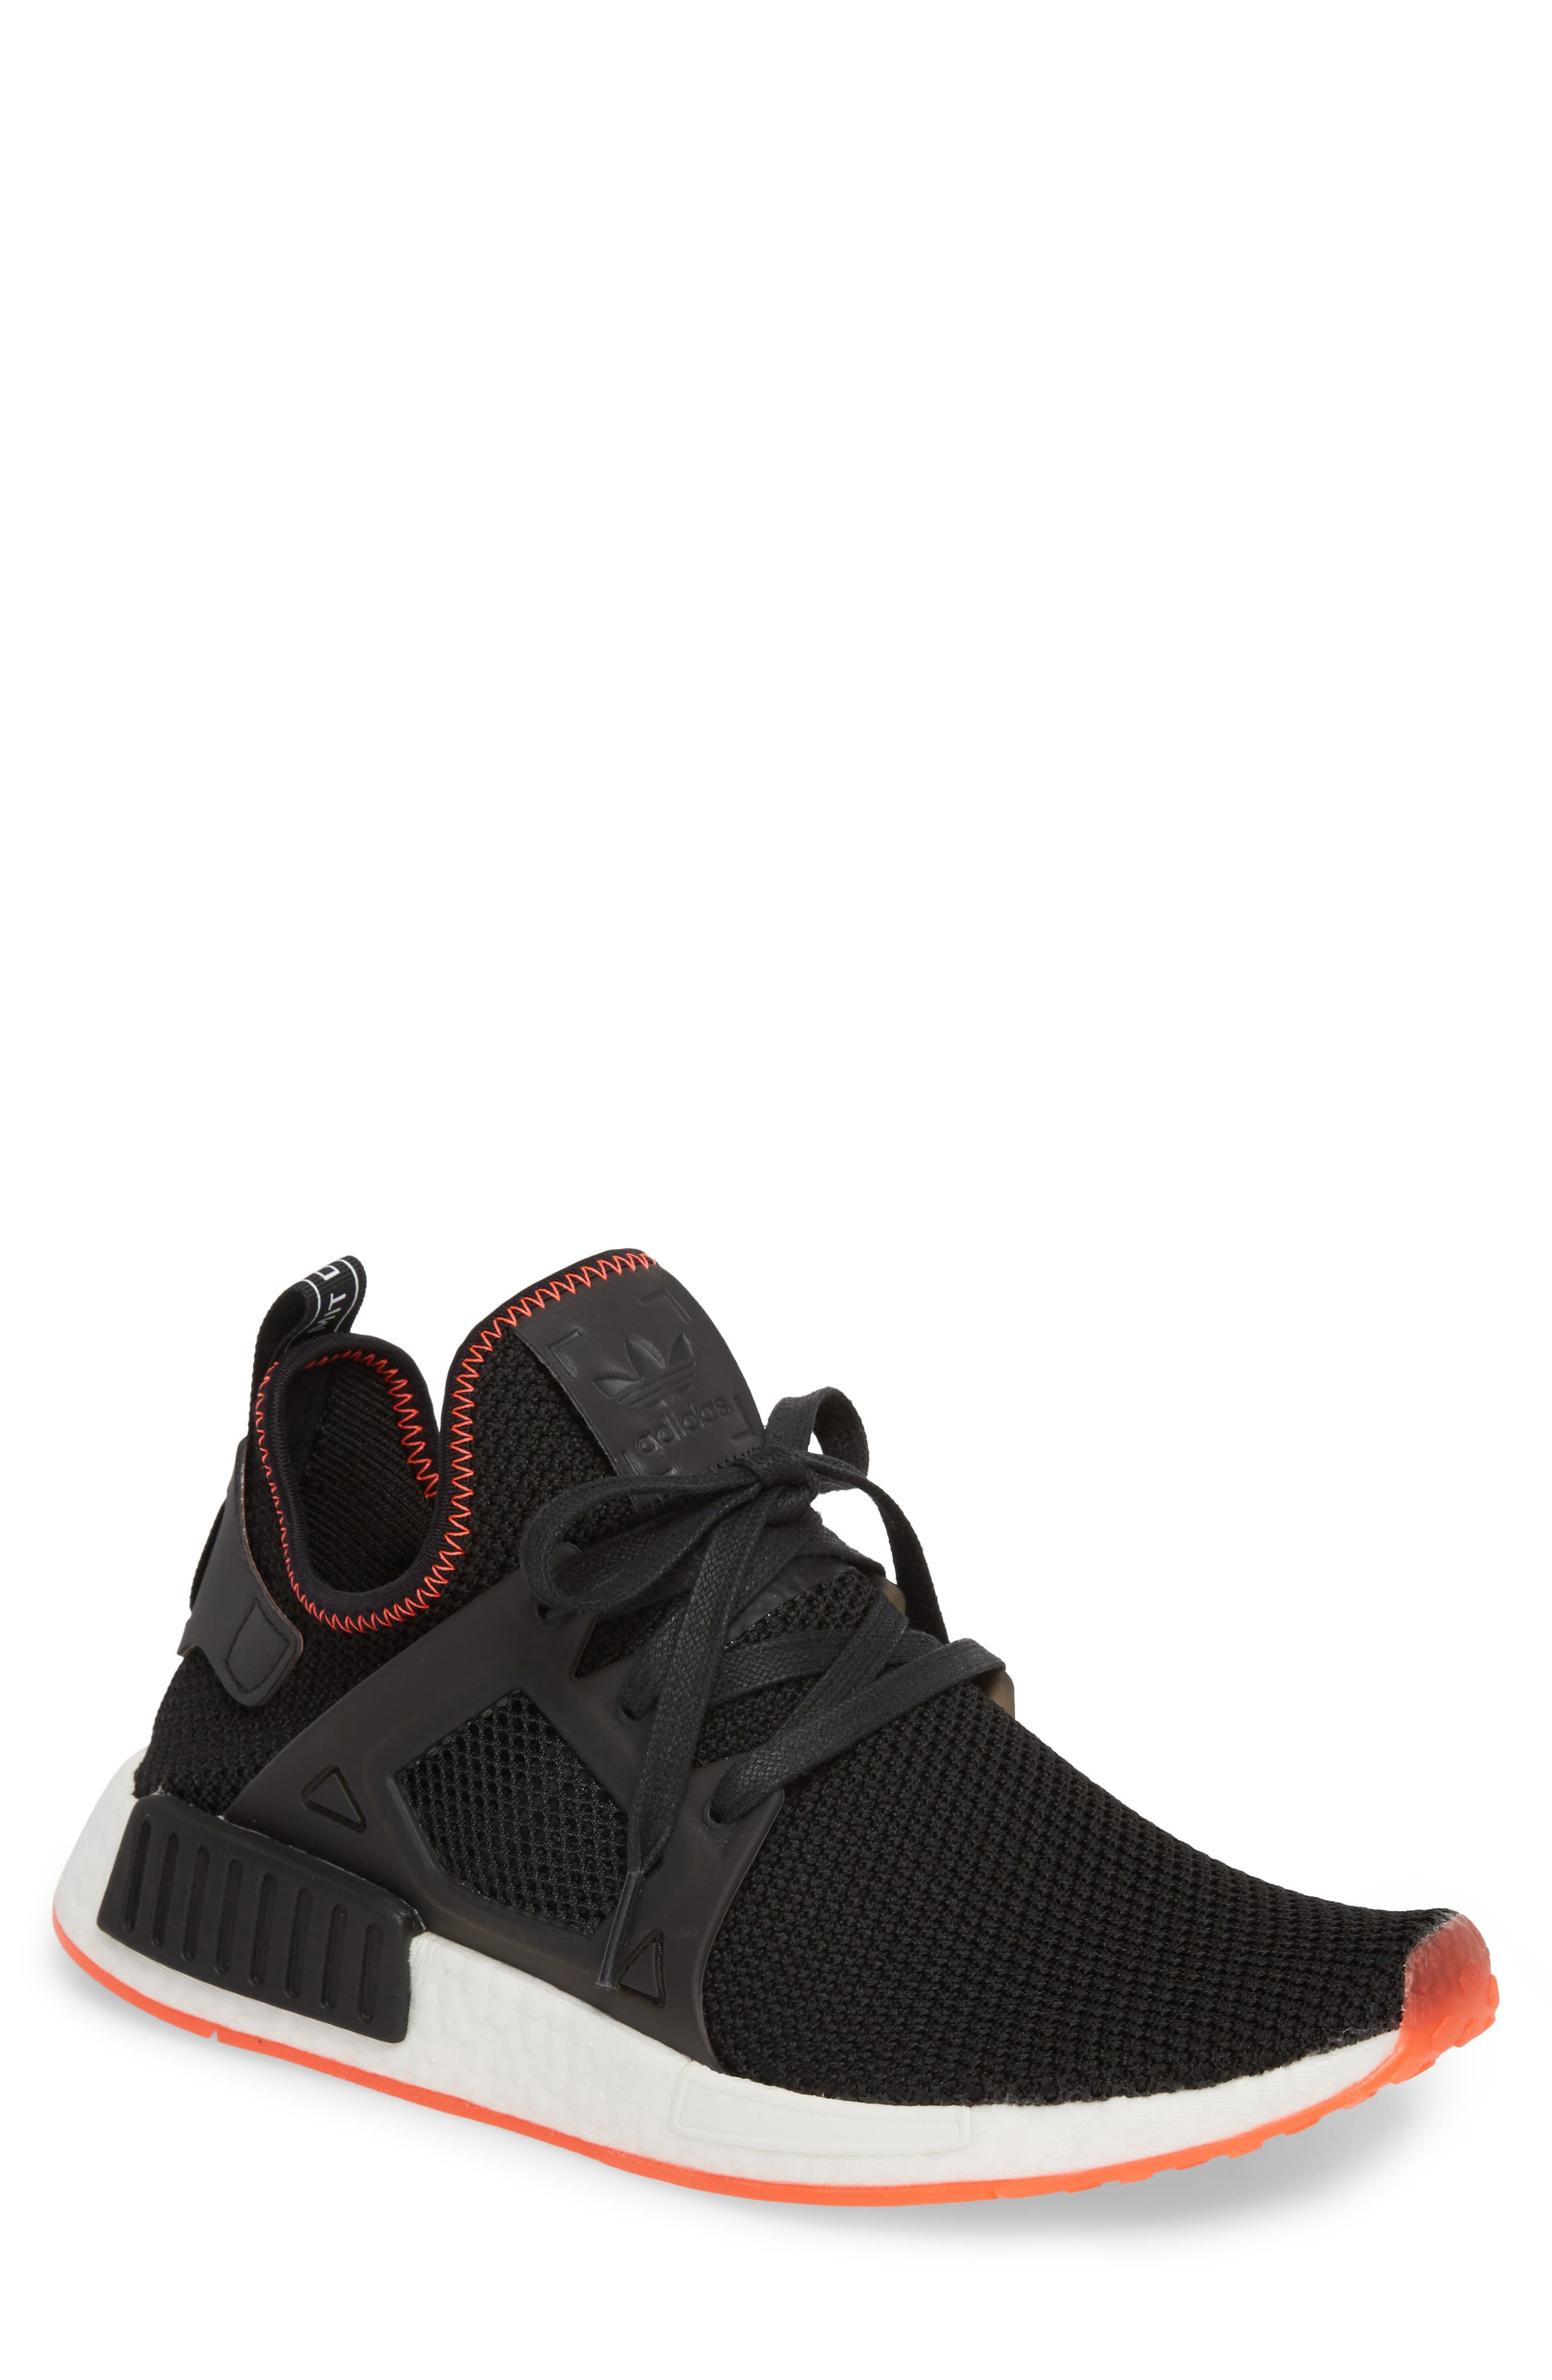 NMD_XR1 Sneaker,                         Main,                         color, 001